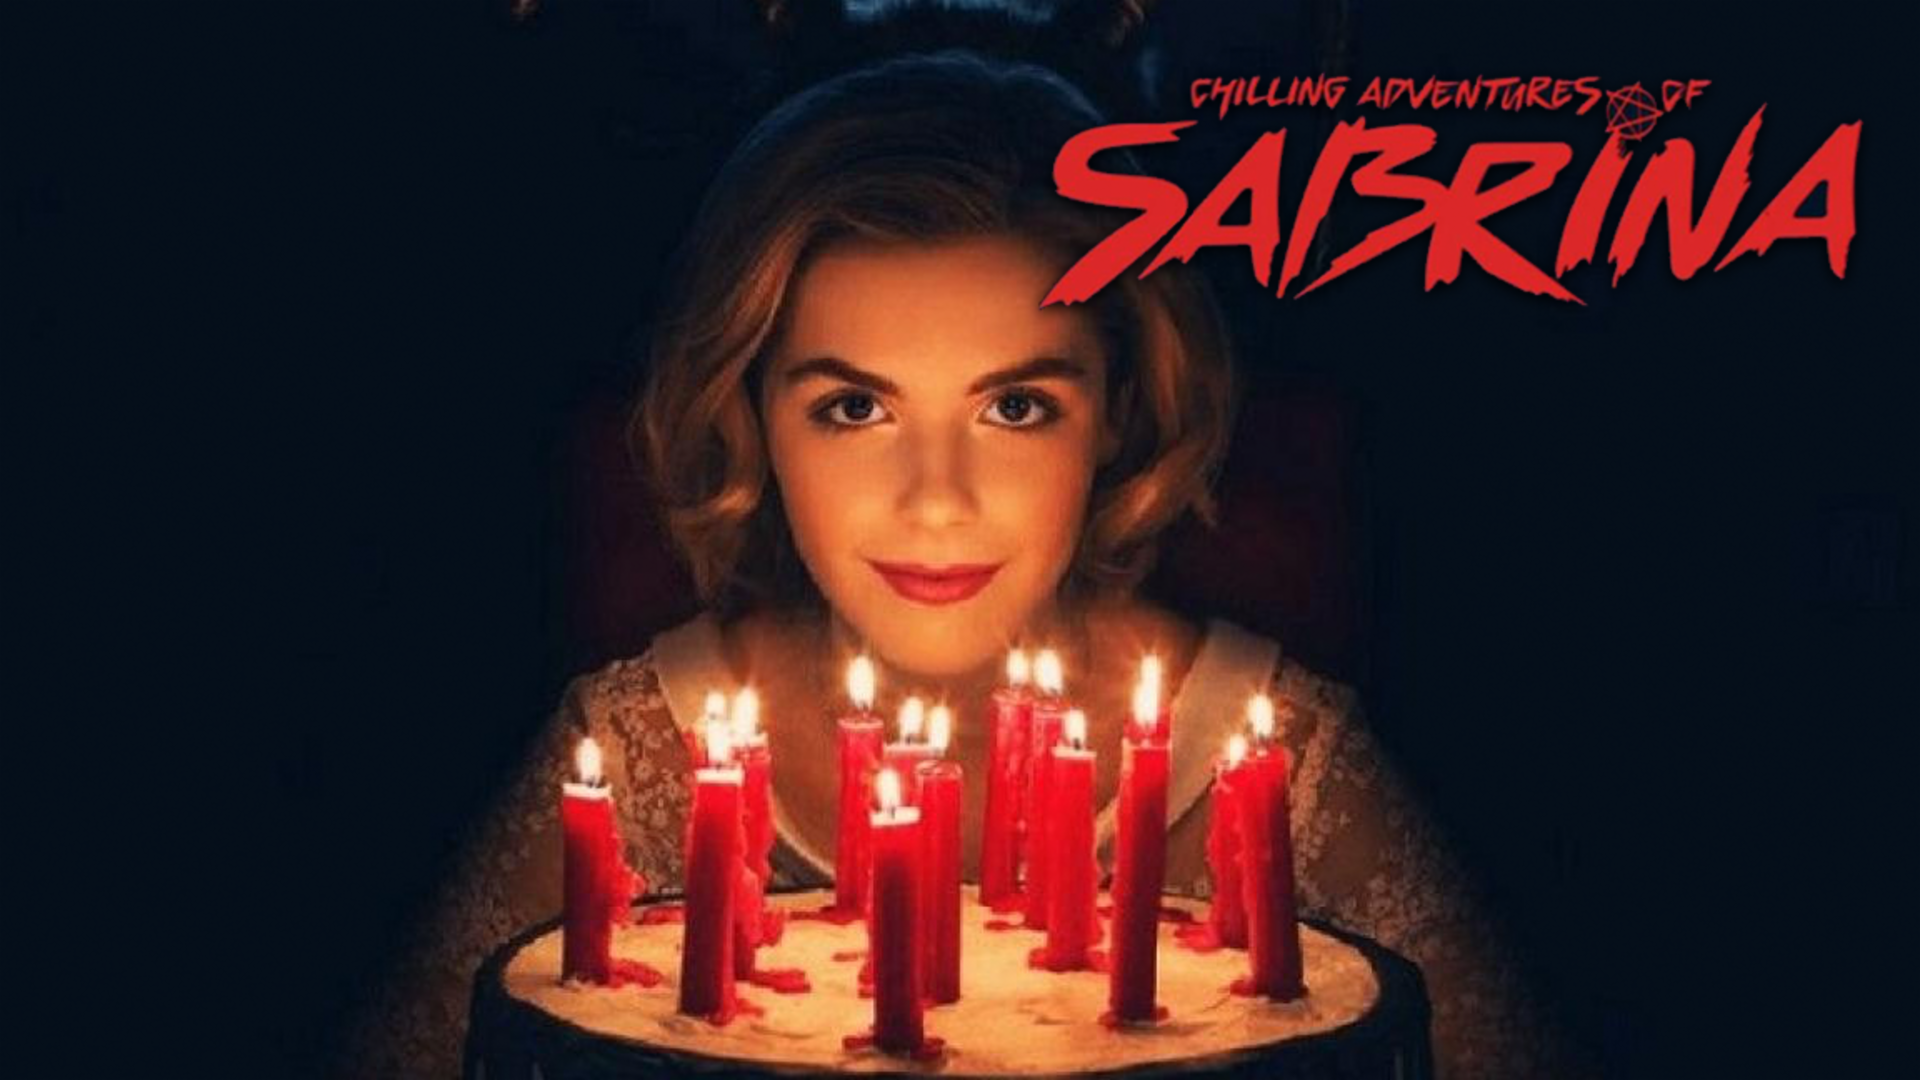 What You Need to Know About 'The Chilling Adventures of Sabrina' screen capture